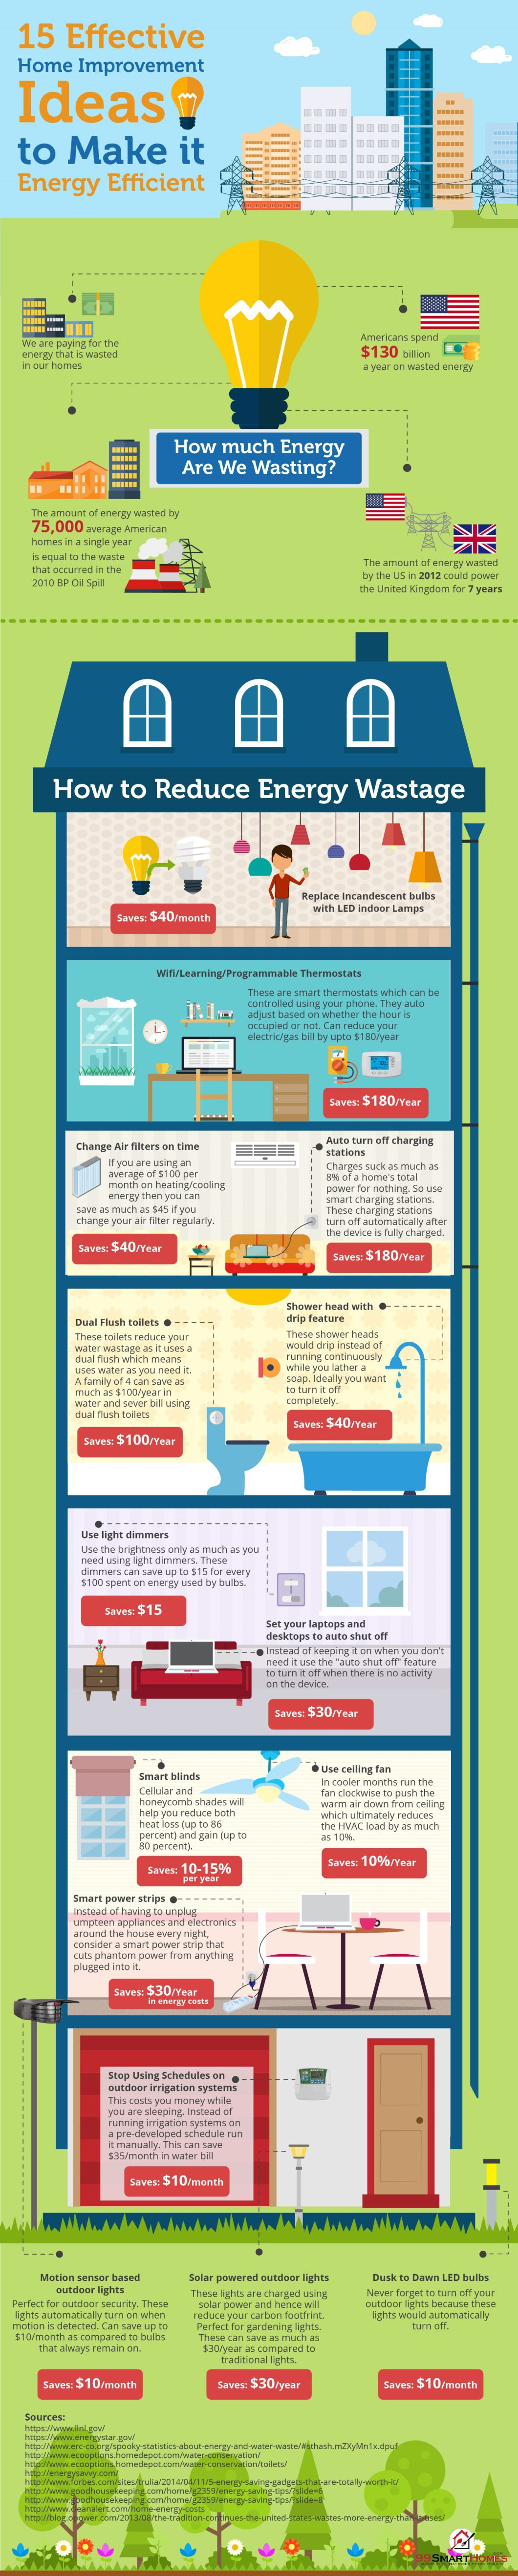 15-Effective-ways-to-make-your-home-energy-efficient